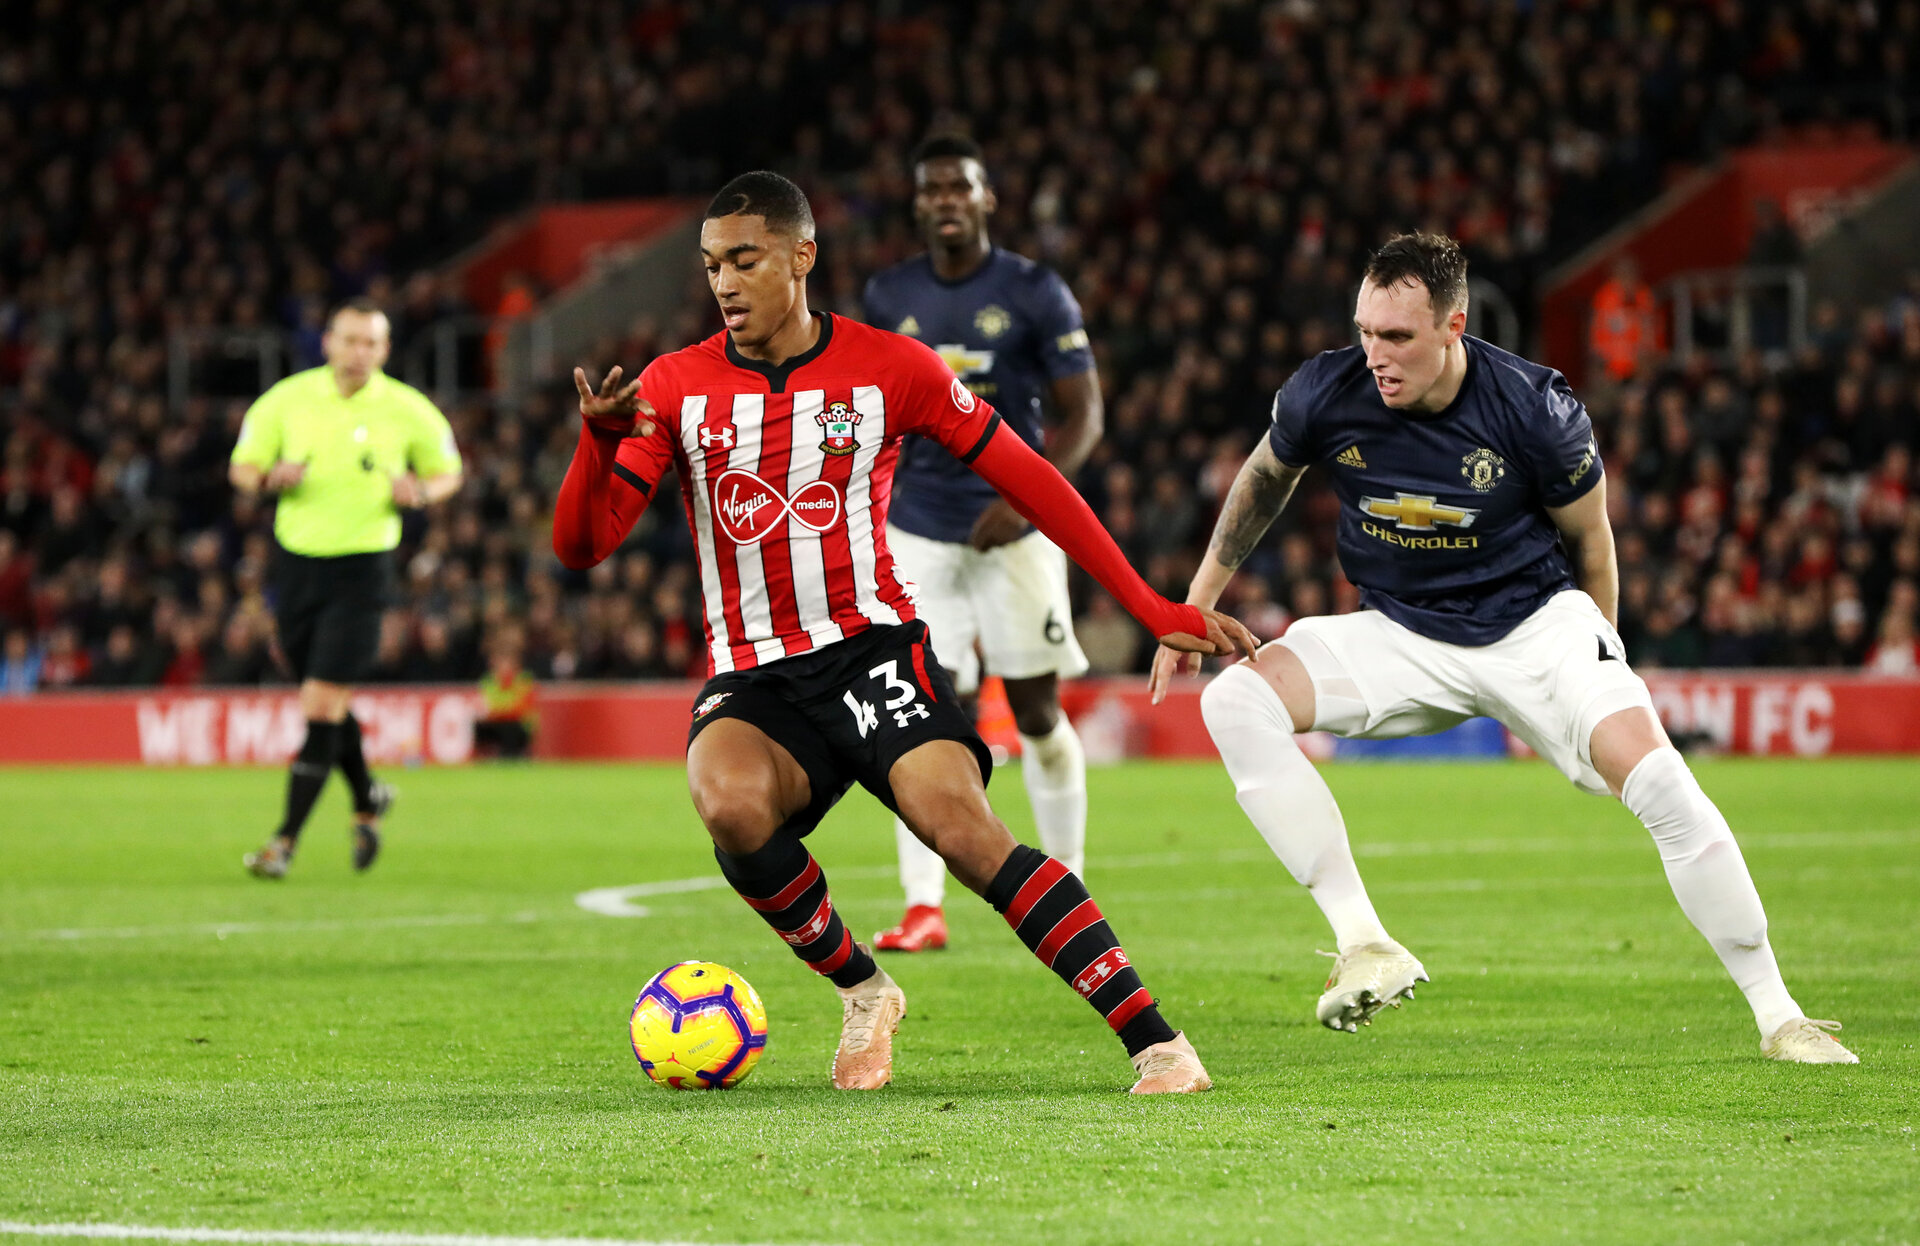 SOUTHAMPTON, ENGLAND - DECEMBER 01: Yan Valery of Southampton during the Premier League match between Southampton FC and Manchester United at St Mary's Stadium on December 1, 2018 in Southampton, United Kingdom. (Photo by Chris Moorhouse/Southampton FC via Getty Images)